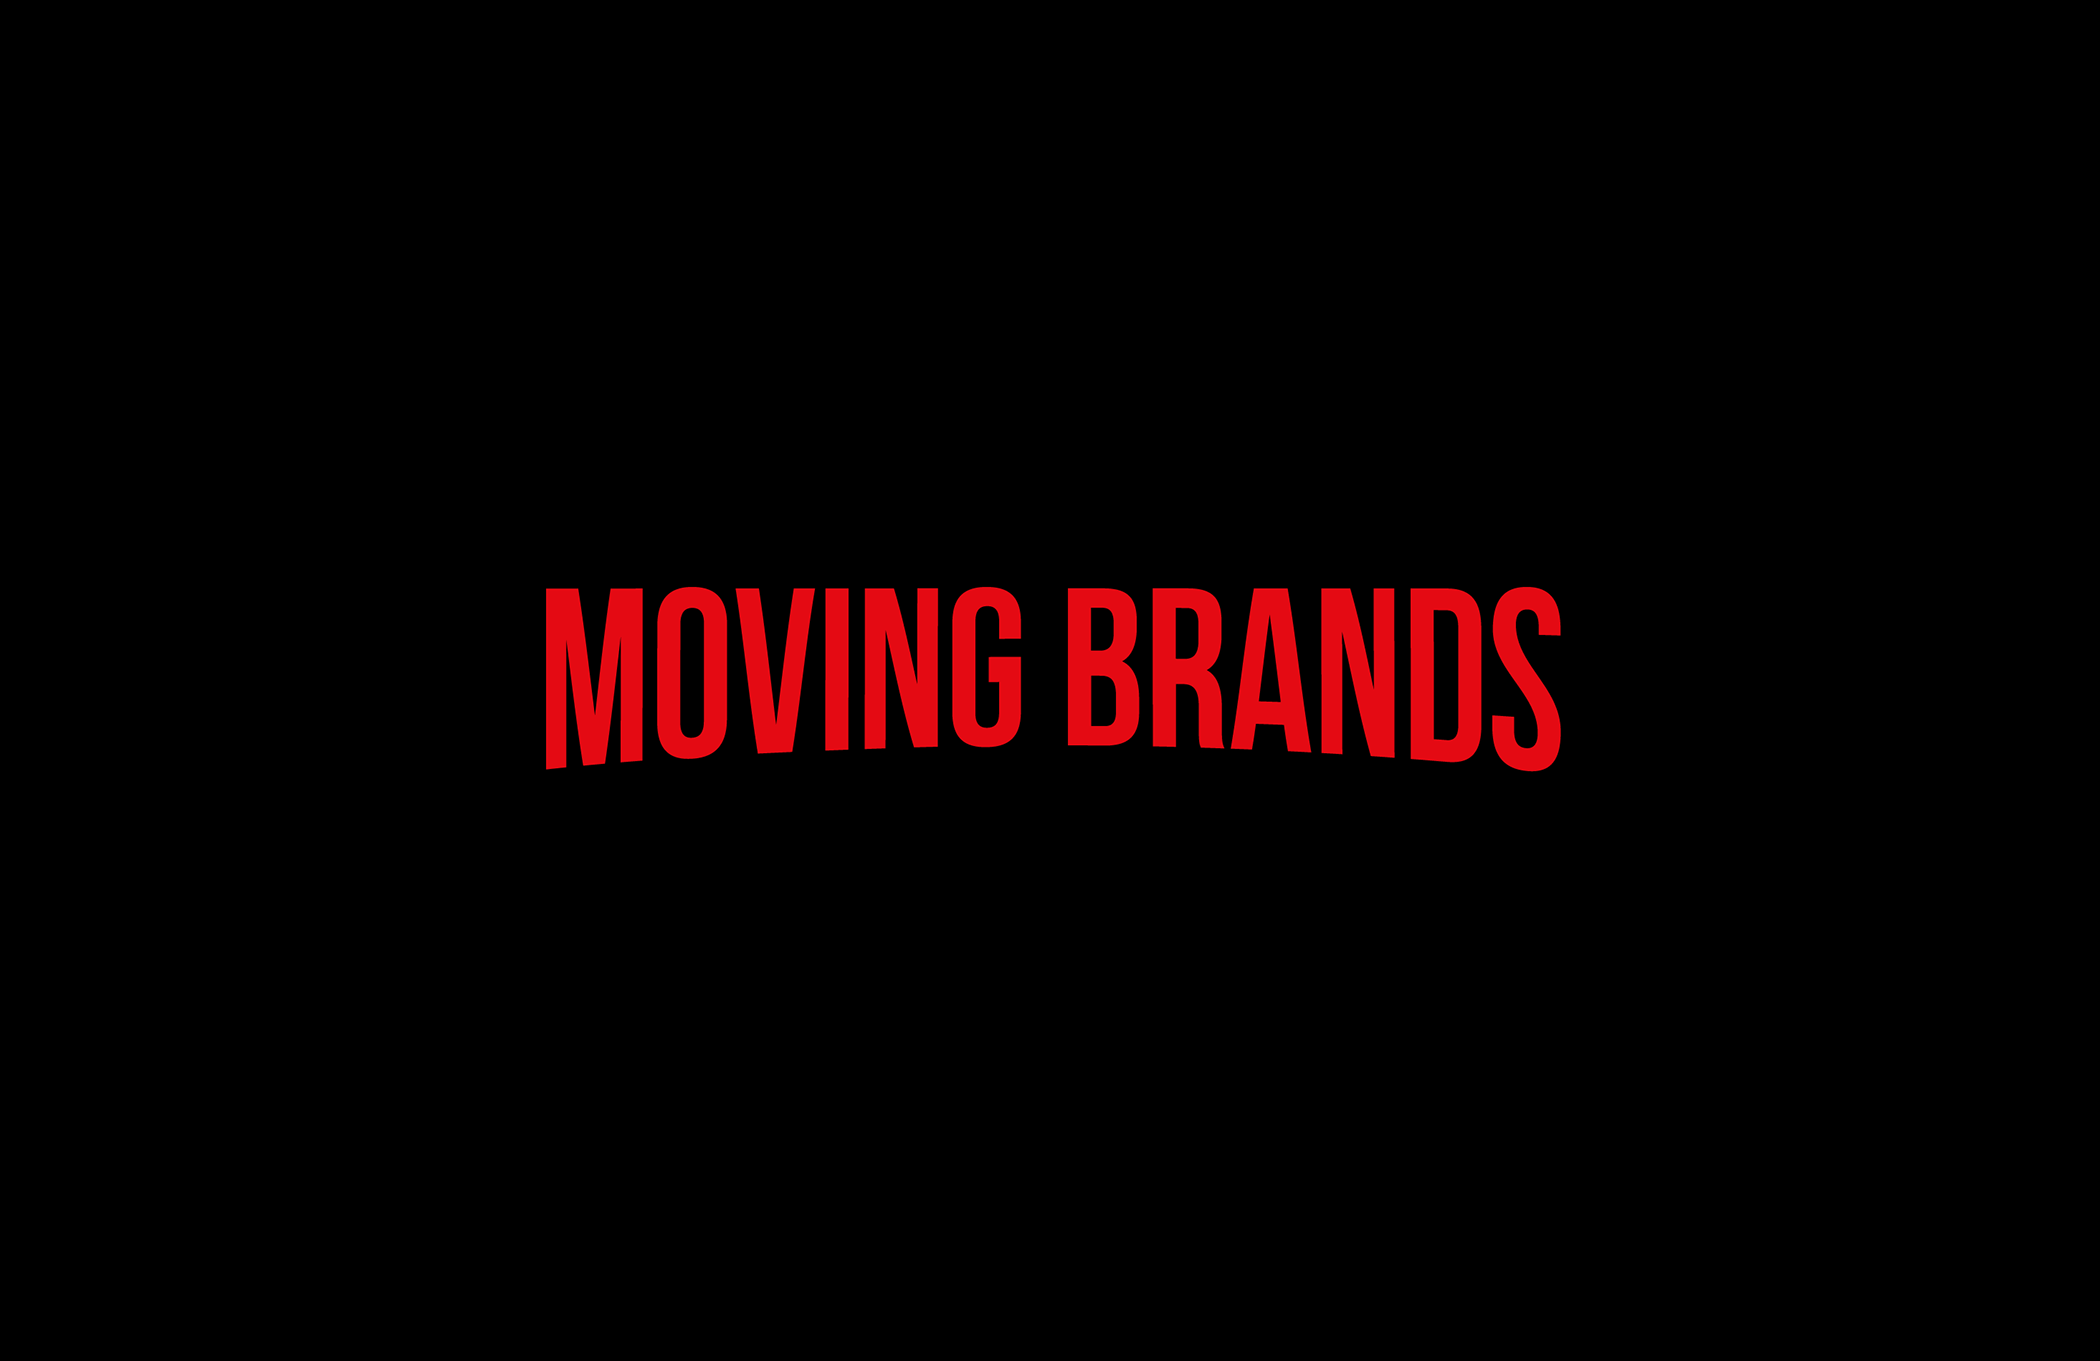 Moving Brands - Agency behind the Netflix logo